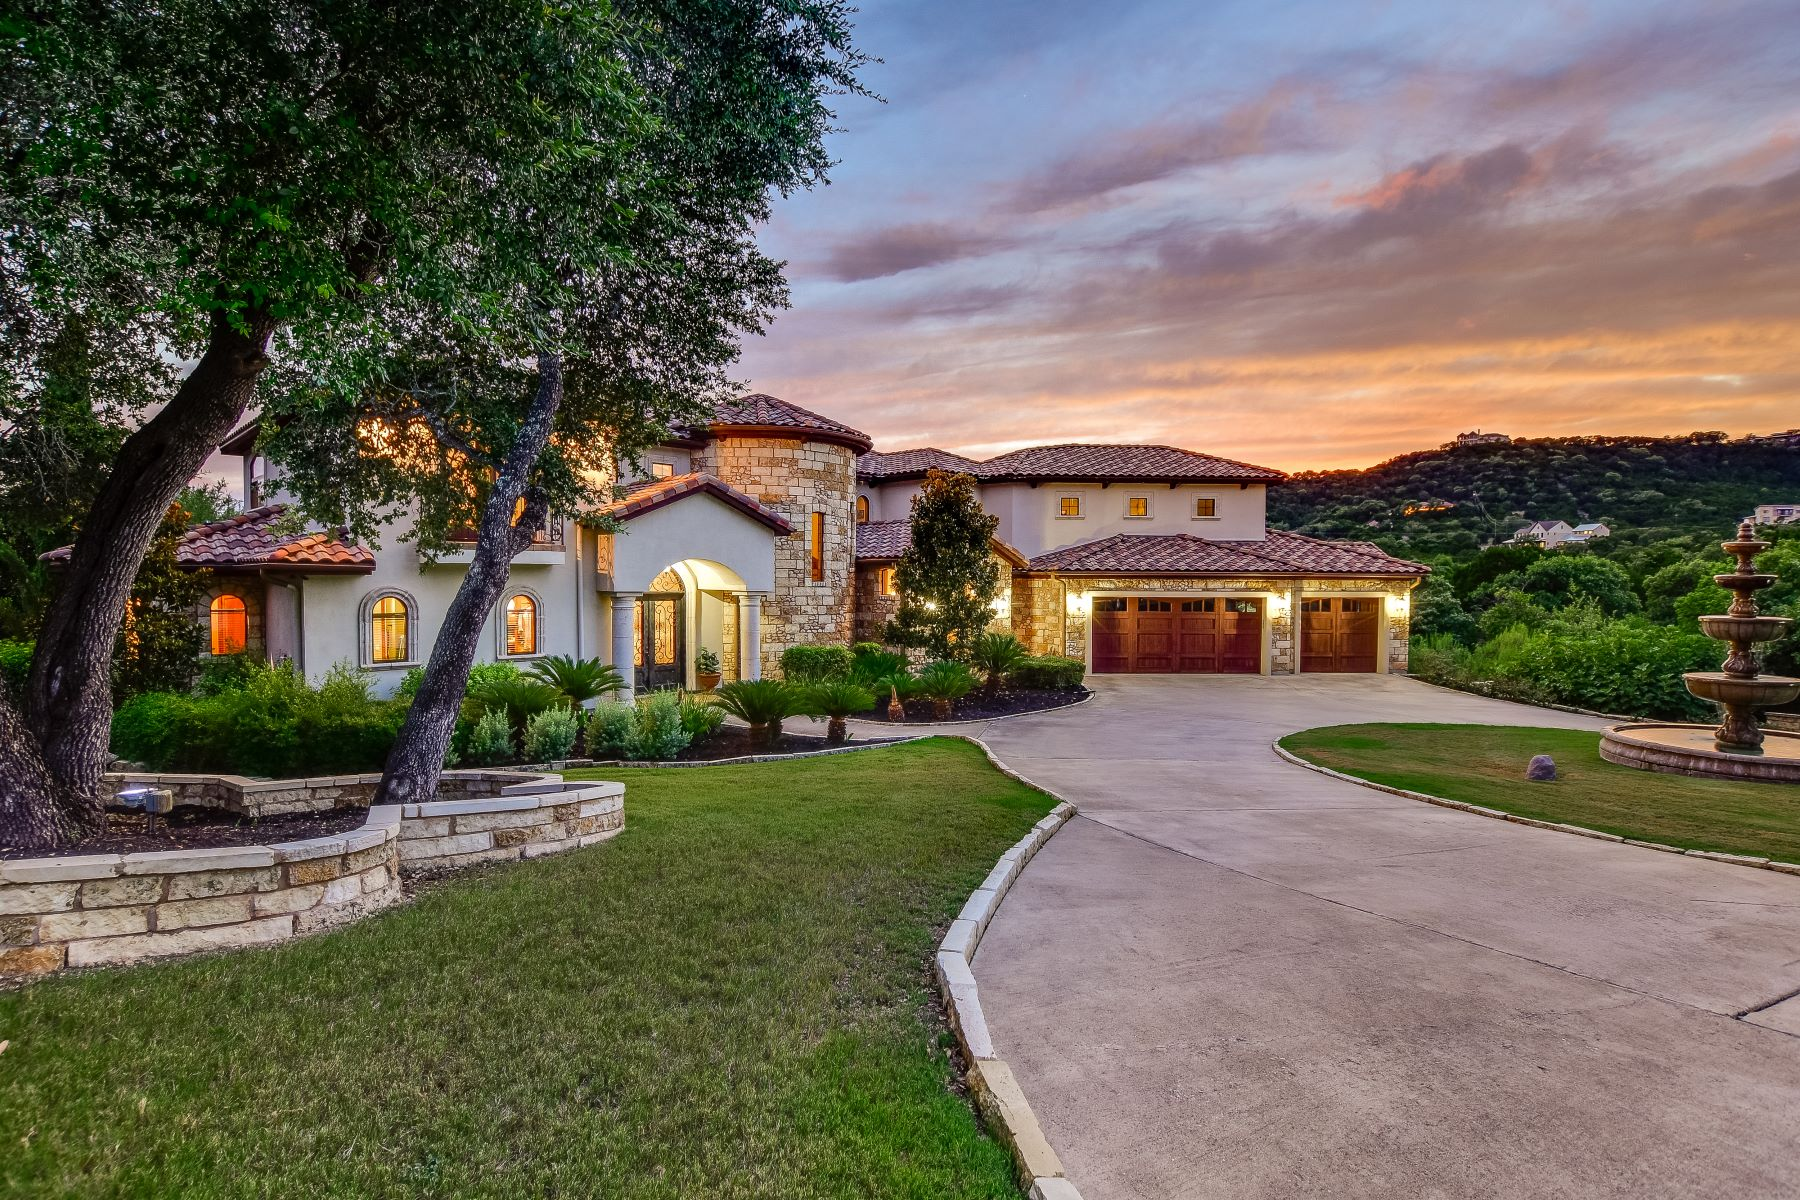 Single Family Homes for Active at Tuscan-Style Lake Travis Escape With Vineyard 16920 Northlake Hills Drive Jonestown, Texas 78645 United States